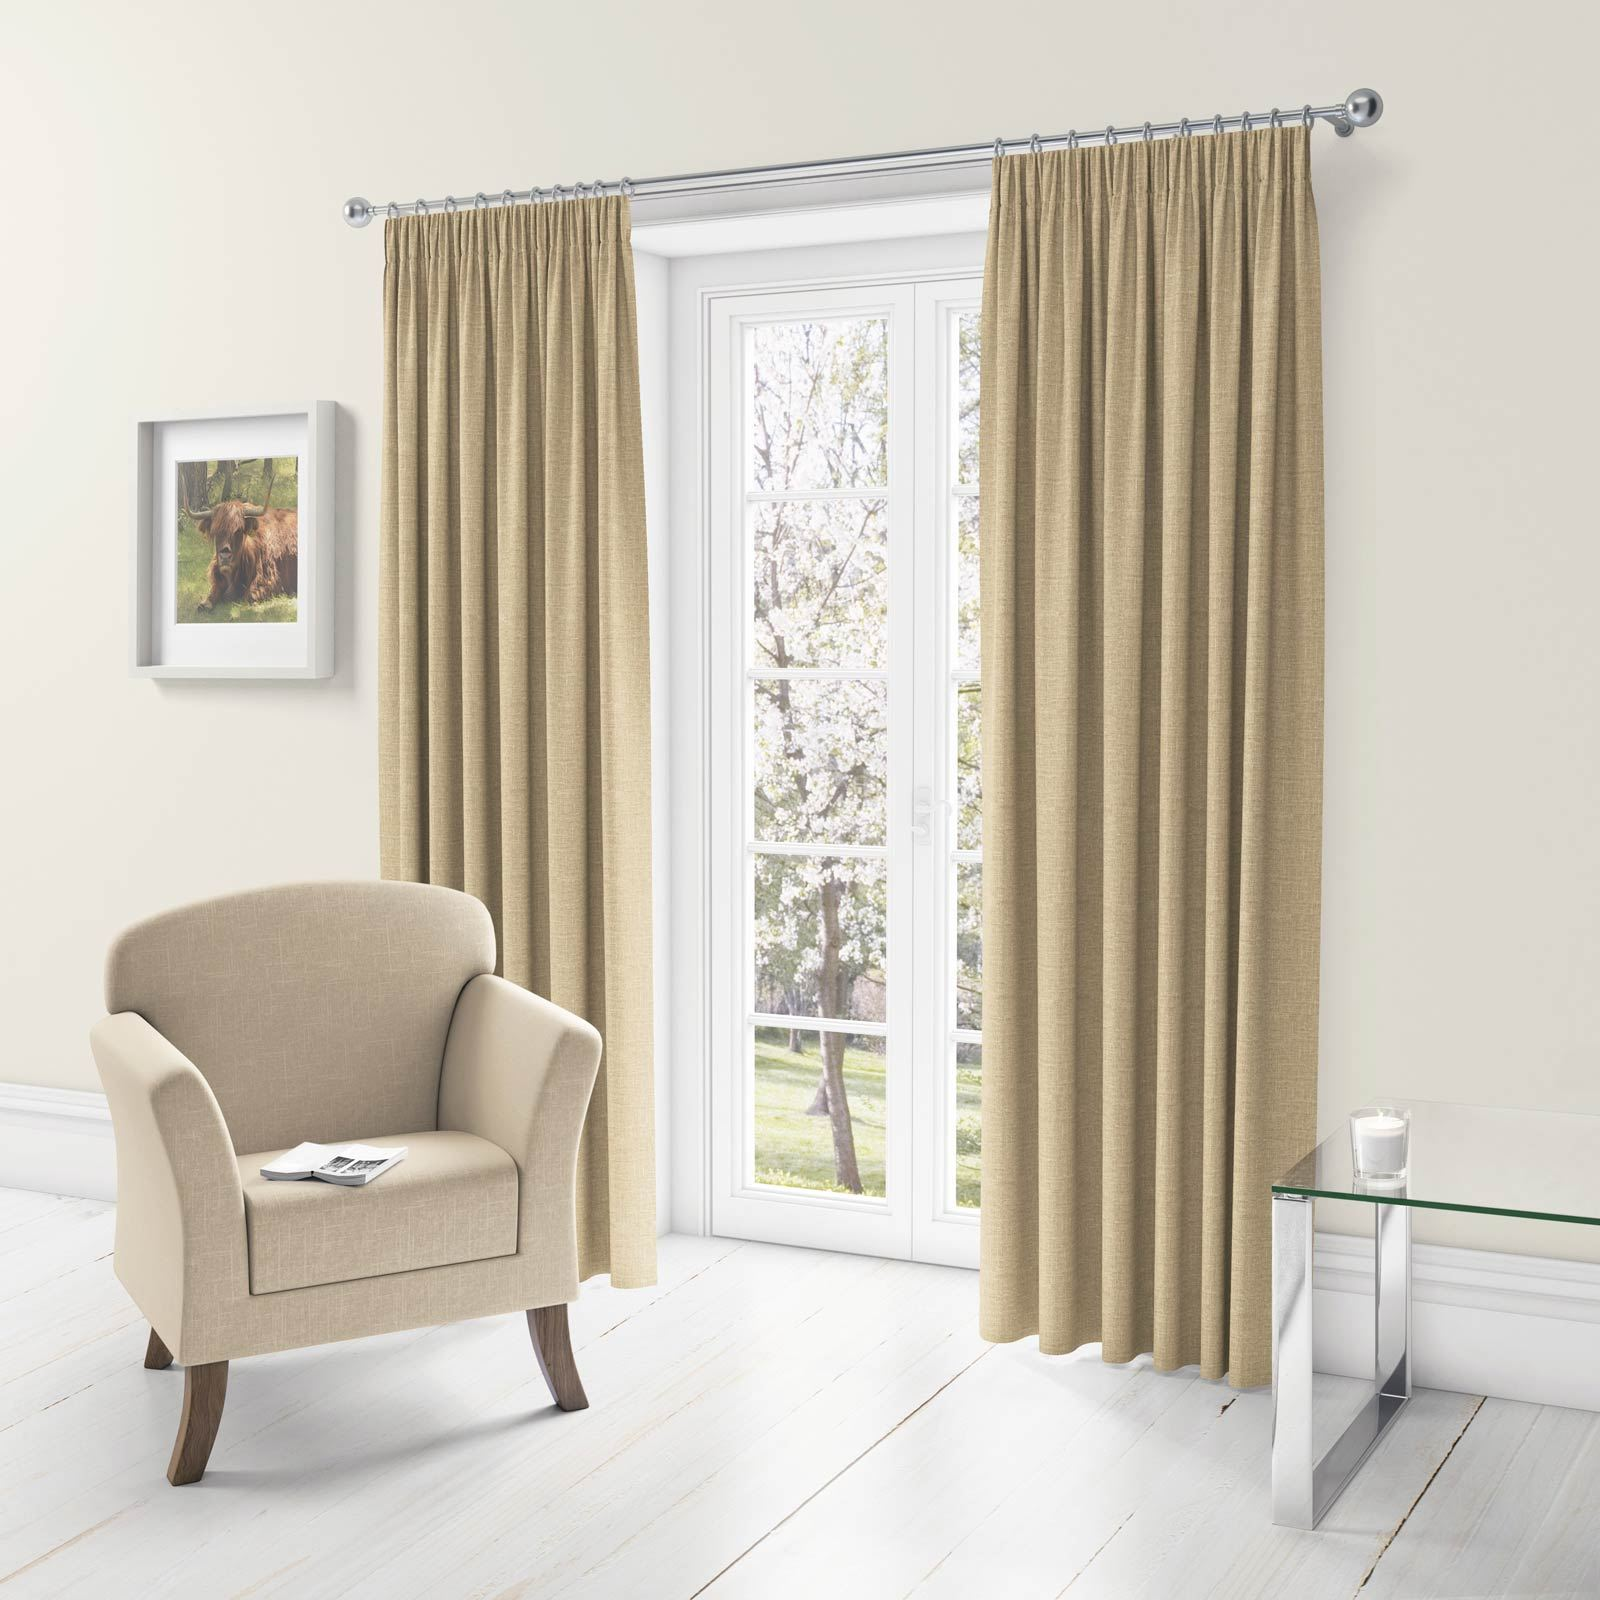 Stunning Linen Style Tape Top Curtains Available In A Range Of Sizes And Colours These Pencil Pleat Do Fantastic Blocking Out The Majority